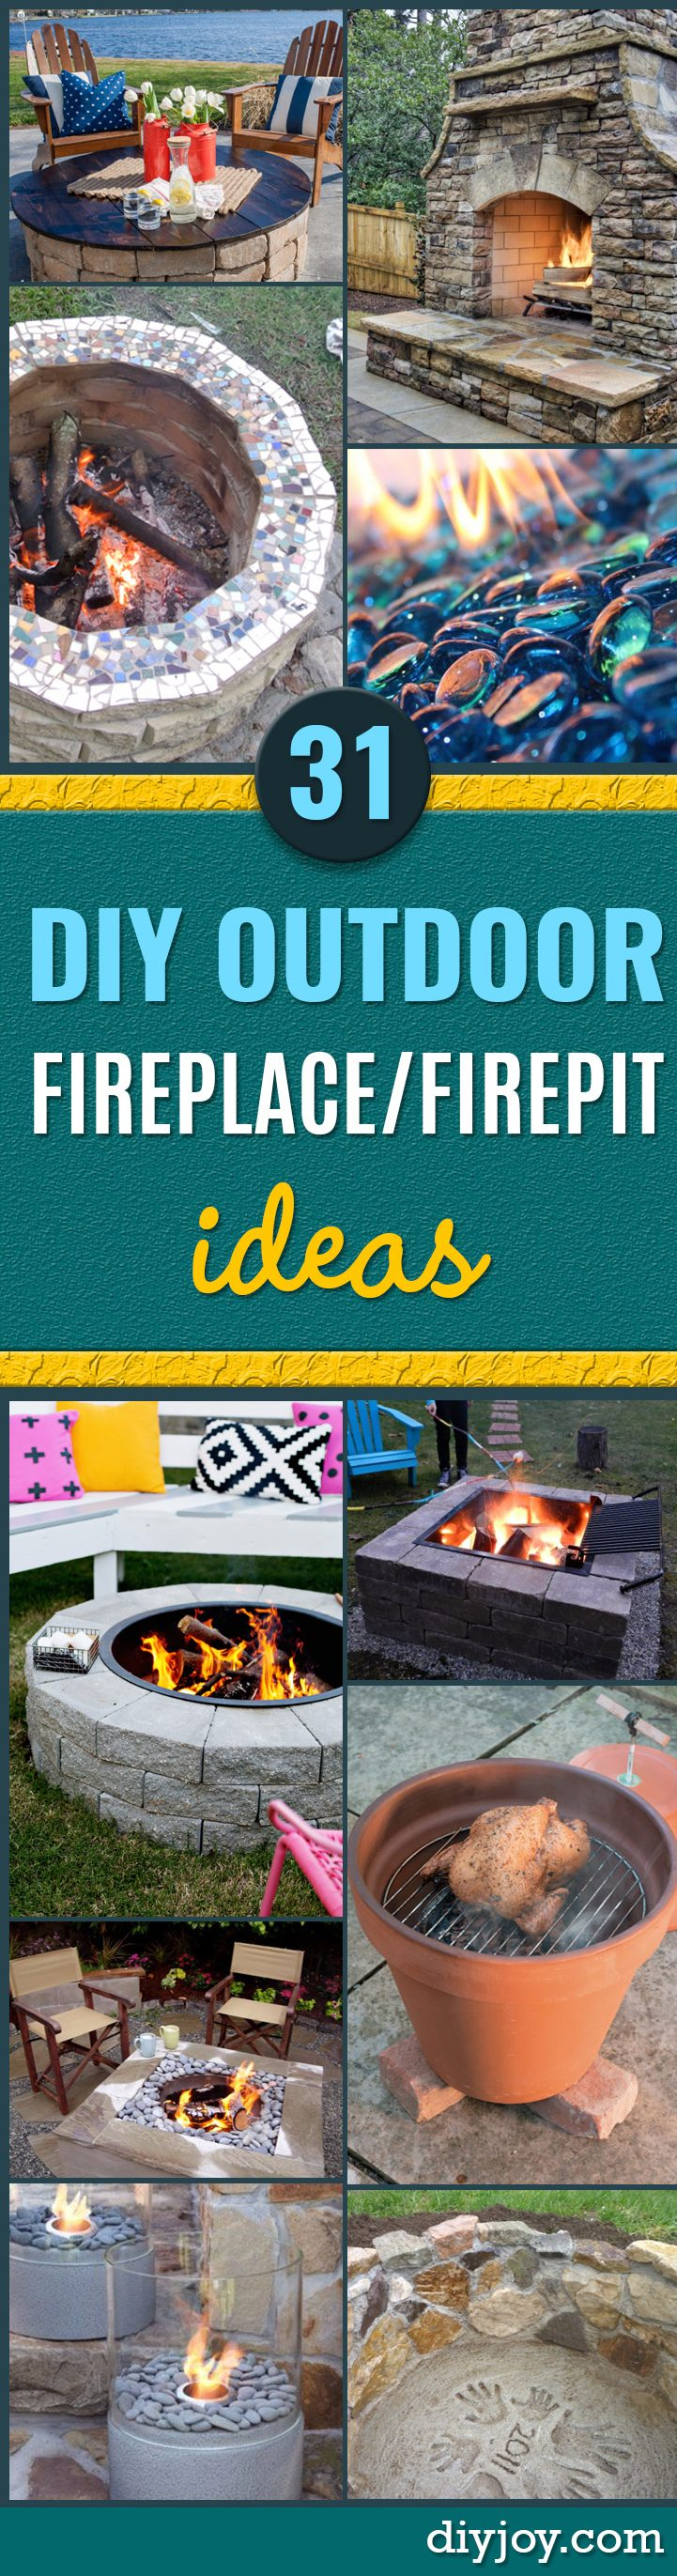 DIY Fireplace Ideas - Do It Yourself Firepit Projects and Fireplaces for Your Yard, Patio, Porch and Home. Outdoor Fire Pit Tutorials for Backyard with Easy Step by Step Tutorials - Cool DIY Projects for Men and Women